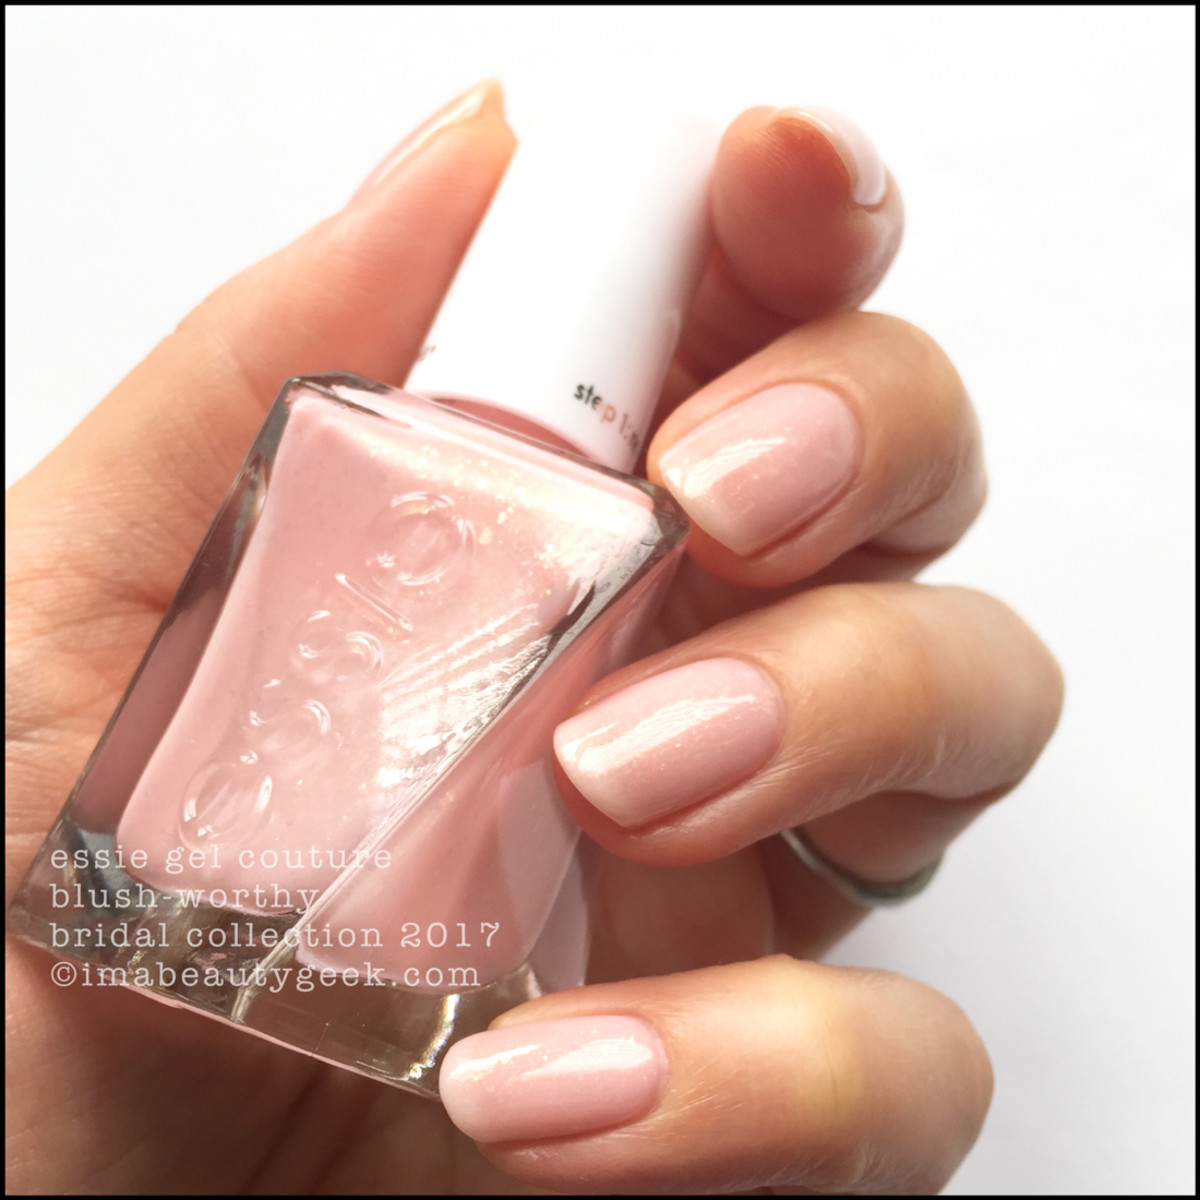 Essie Bridal 2017_Essie Blush Worthy